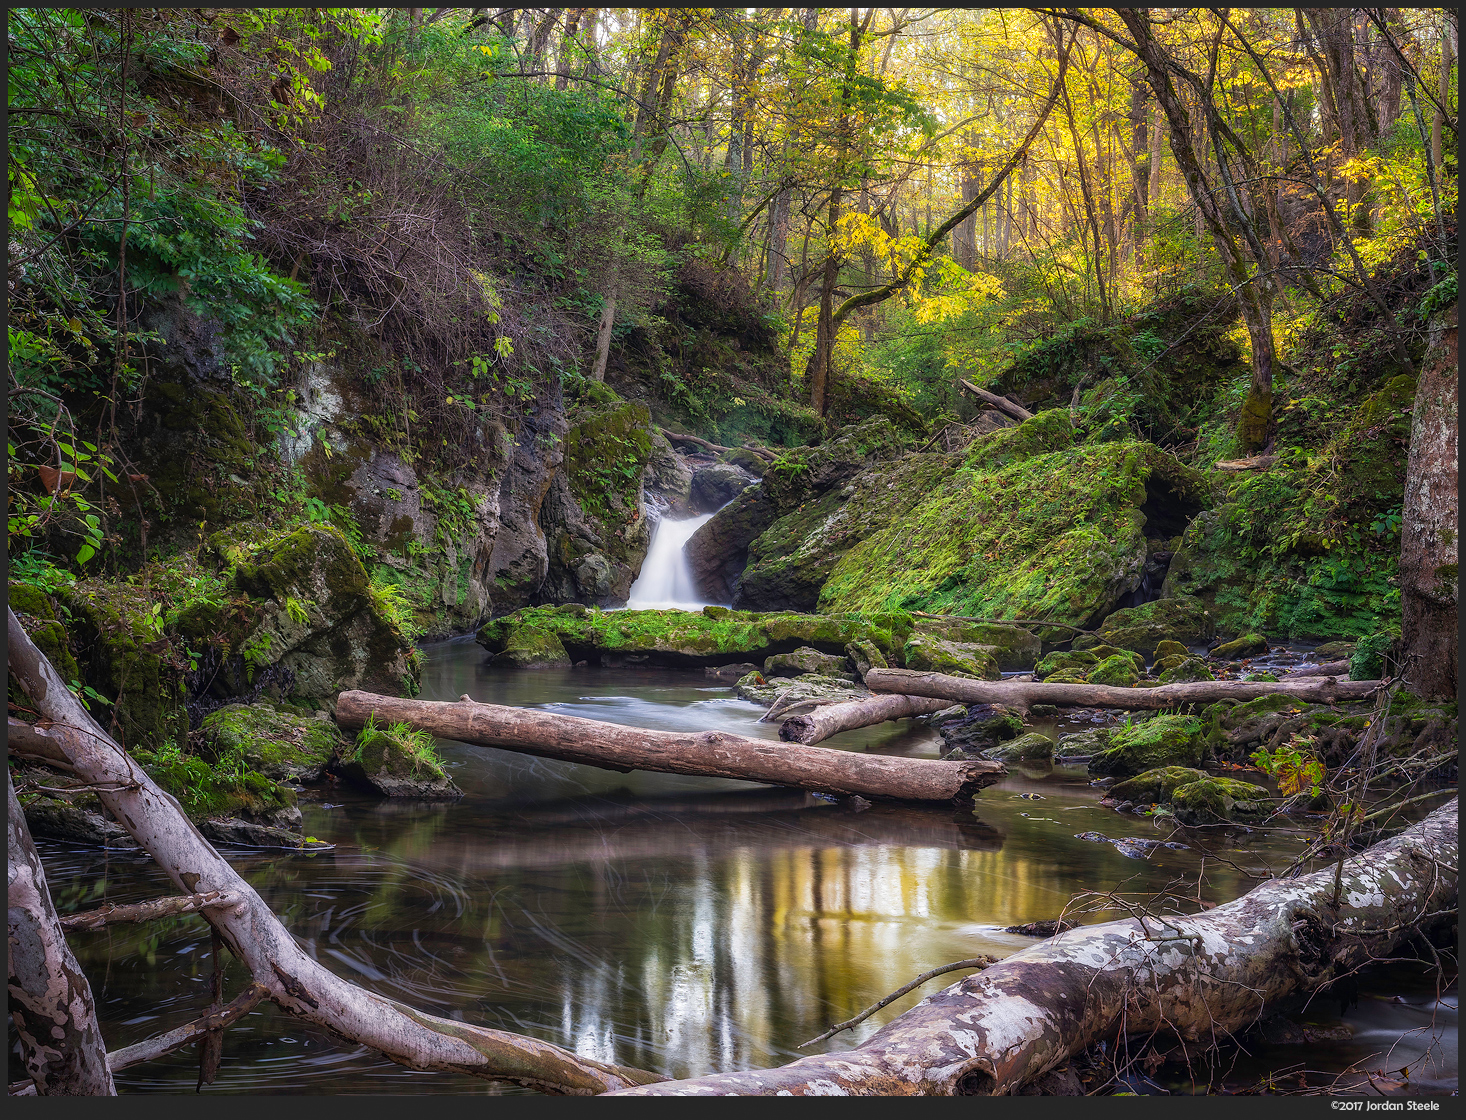 Hidden Paradise, Massies Creek, Ohio - Sony A7 II with Zeiss 55mm f/1.8 @